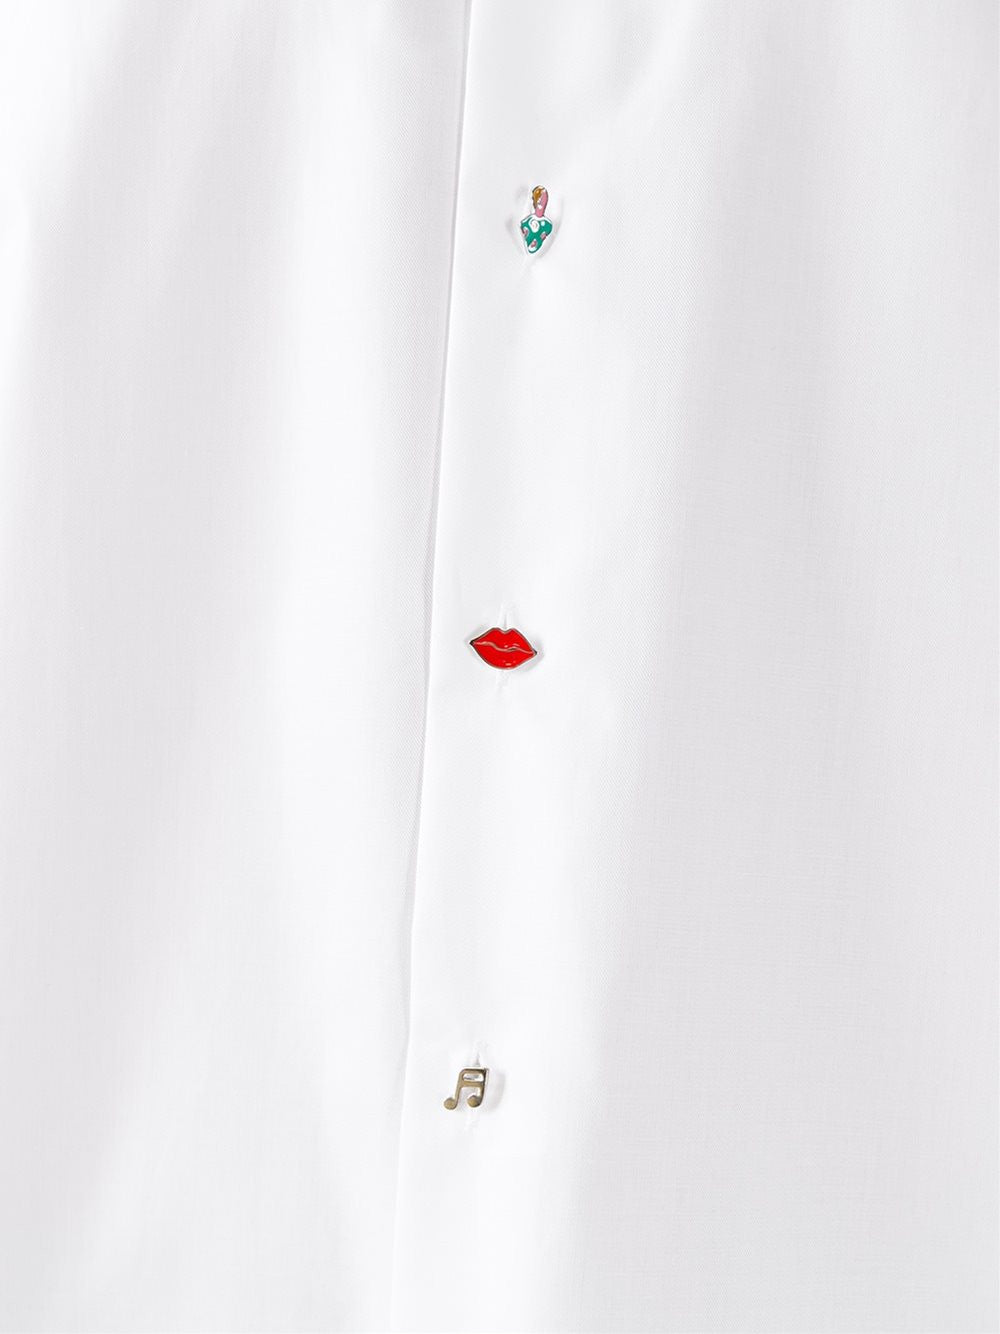 Pin-Button Shirt | PRXC-800P-V17NOV